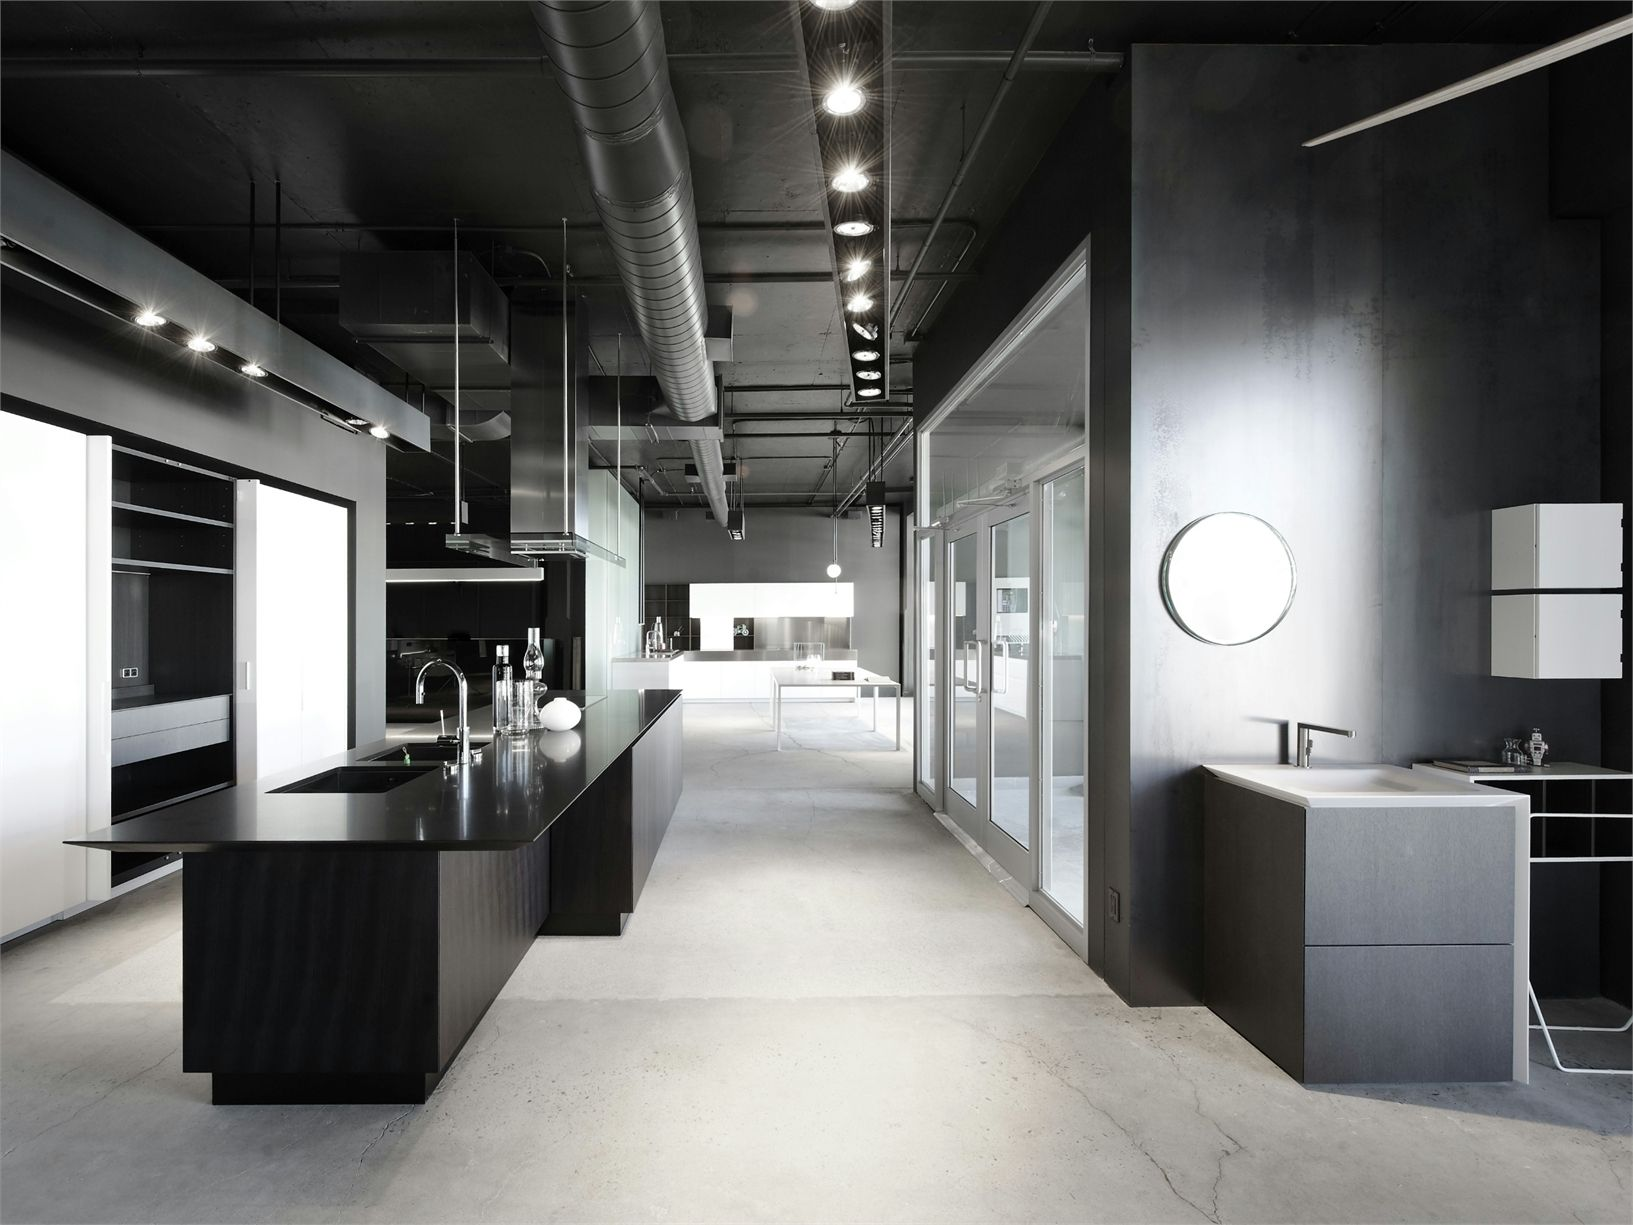 The new exhibition space boffi in montreal - Cucine boffi milano ...